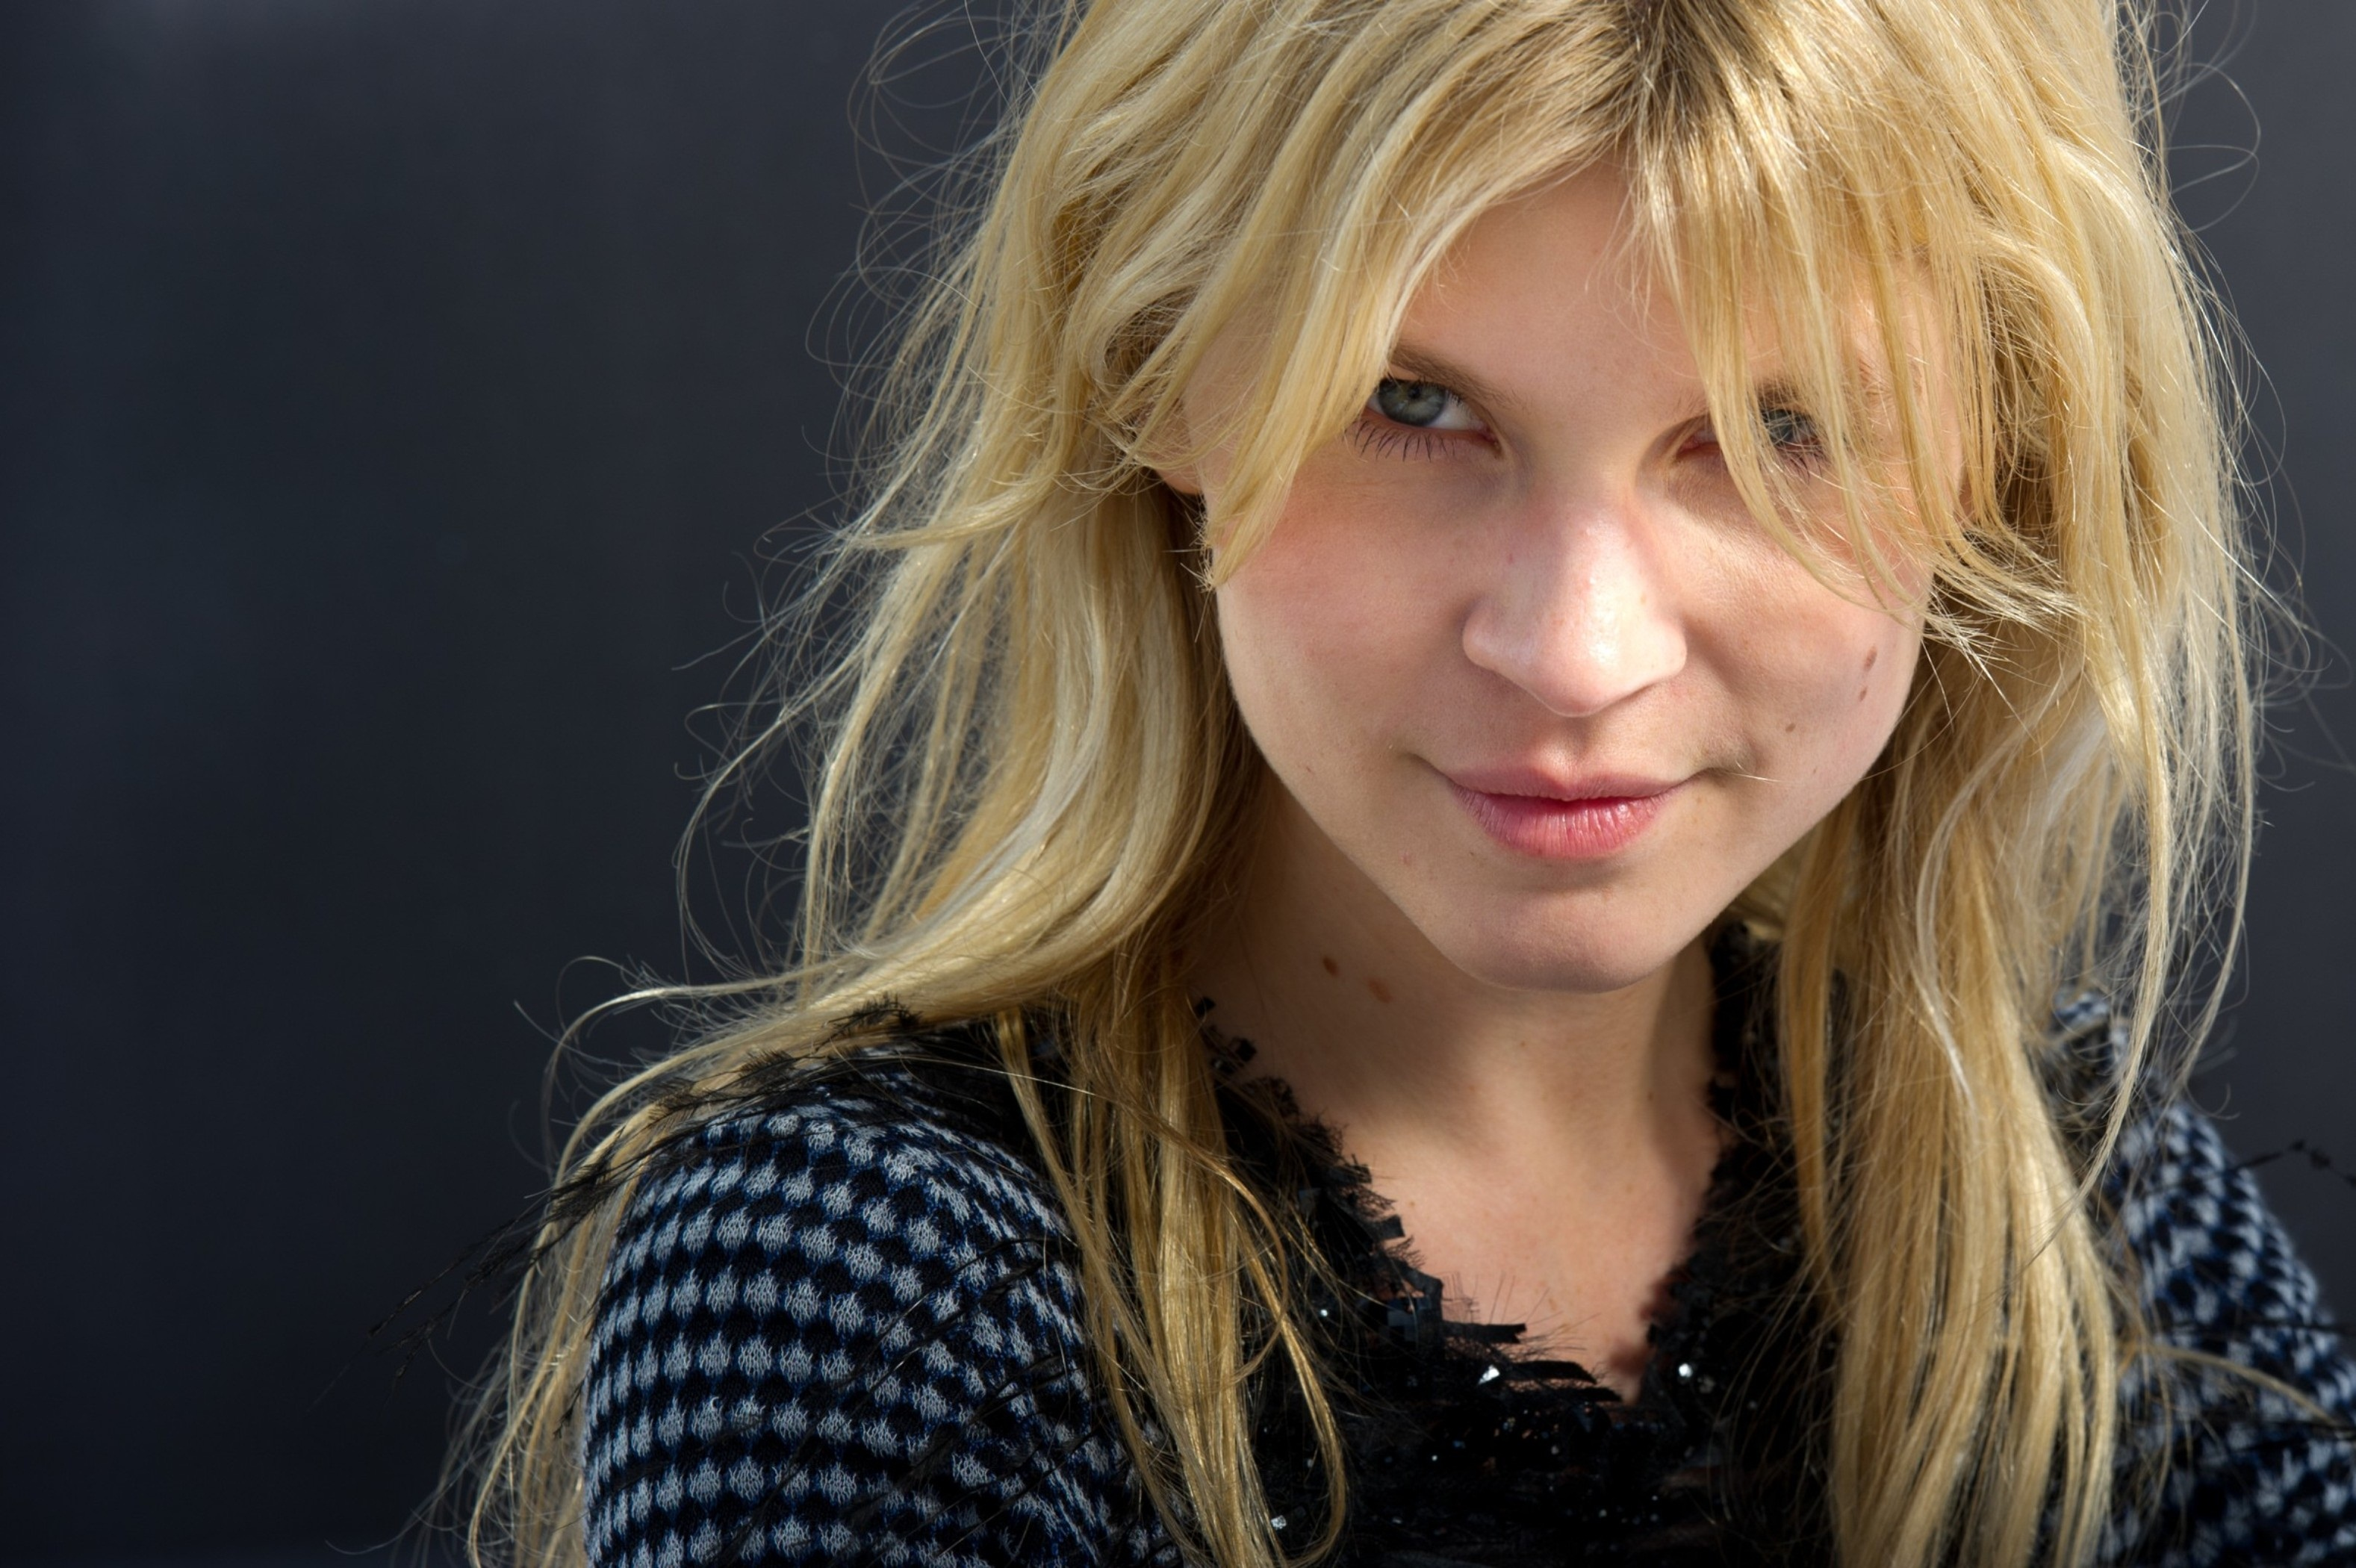 3155x2100 - Clemence Poesy Wallpapers 8